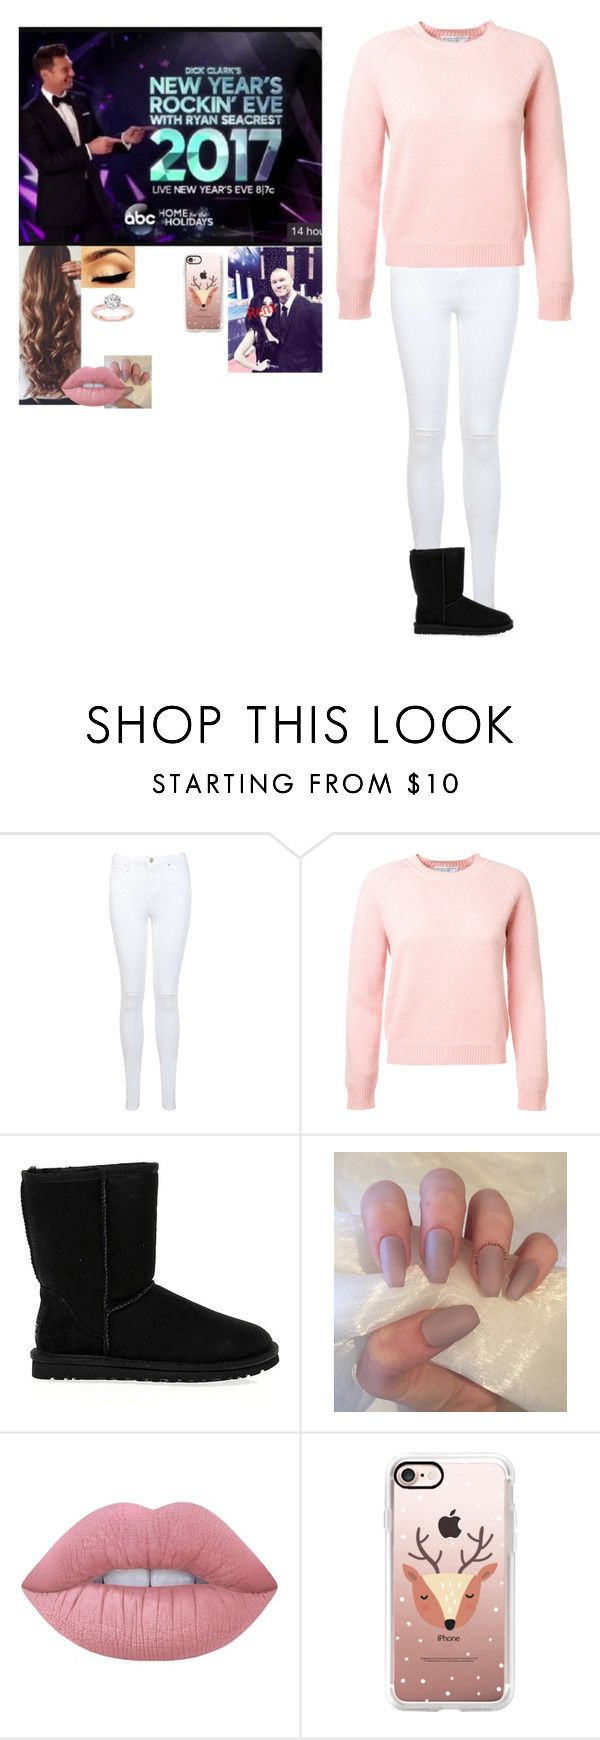 """Dick Clark's New Years Rockin Eve with Randy-Remi-"" by riley-497 ❤ liked on Polyvore featuring Miss Selfridge, UGG Australia, Lime Crime and Casetify"